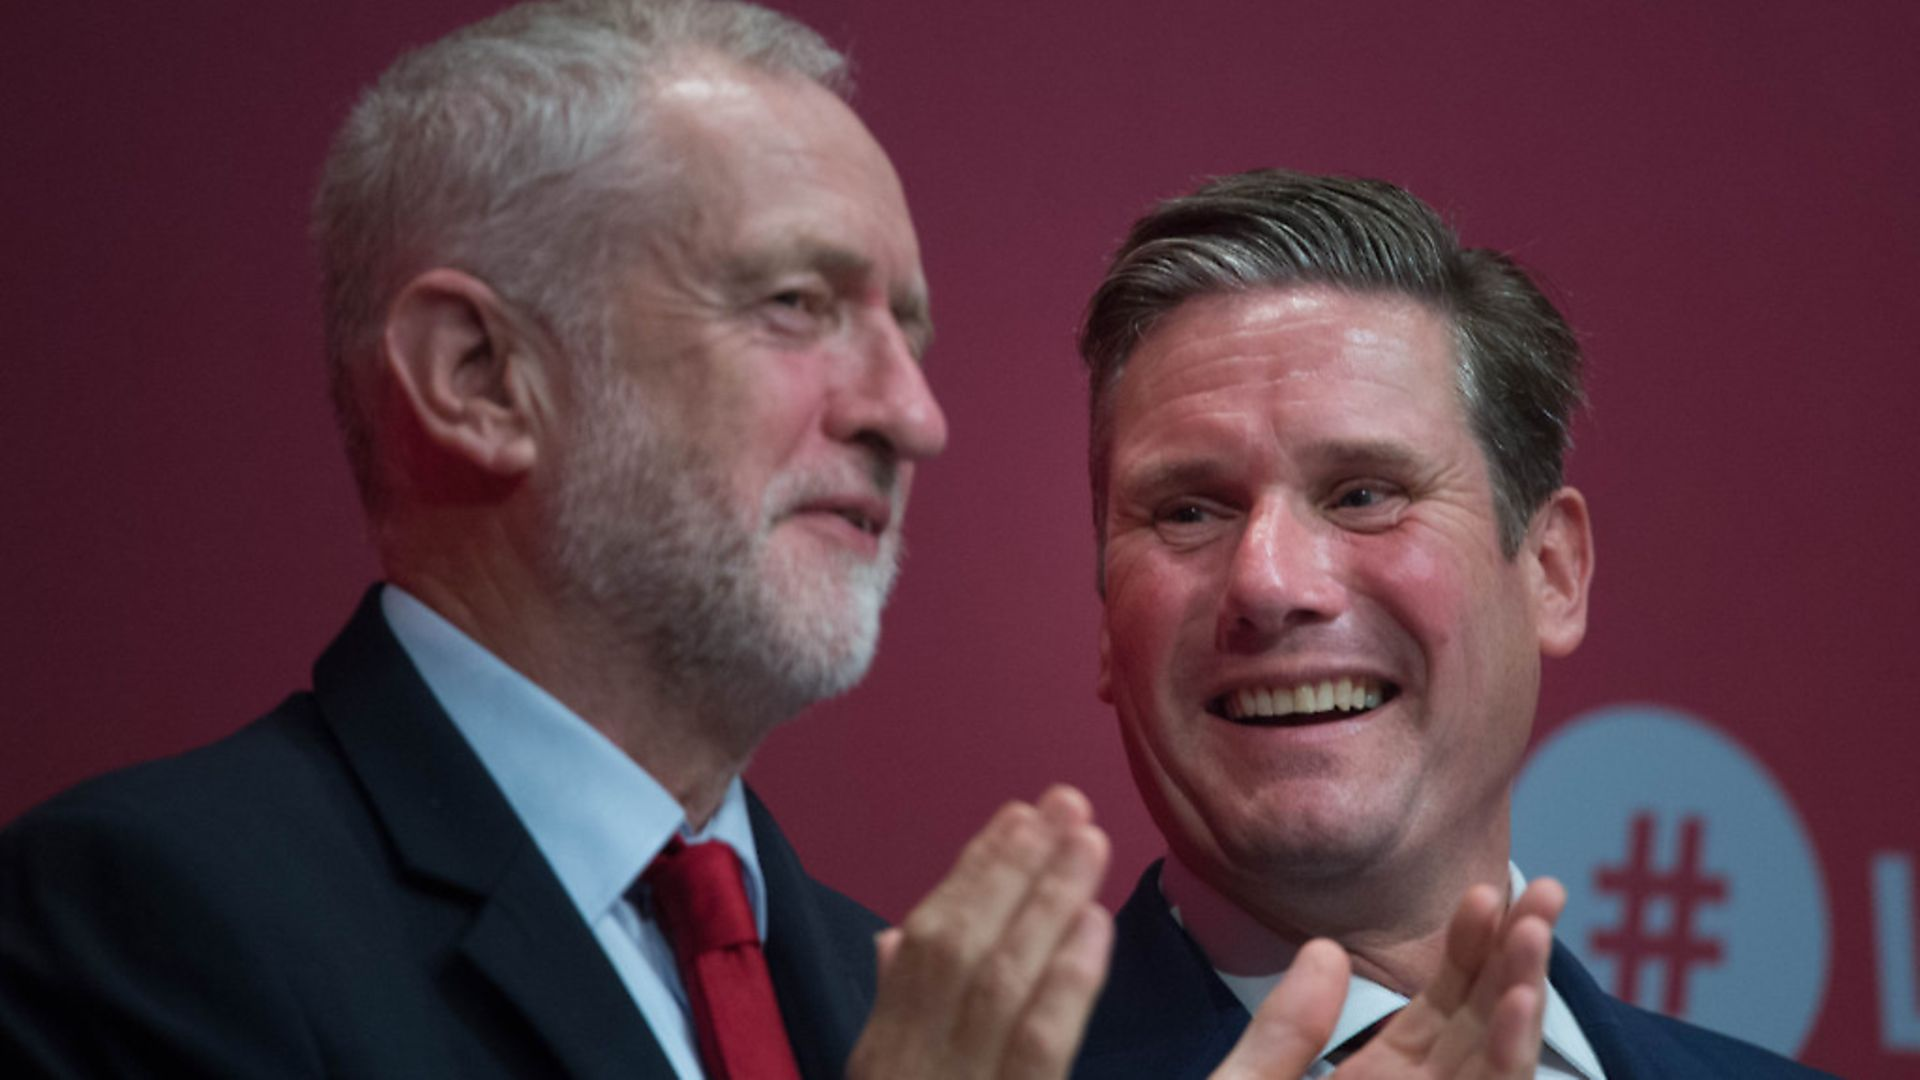 Labour leader Jeremy Corbyn with Shadow Brexit secretary Sir Keir Starmer. Photograph: Stefan Rousseau/PA. - Credit: PA Wire/PA Images